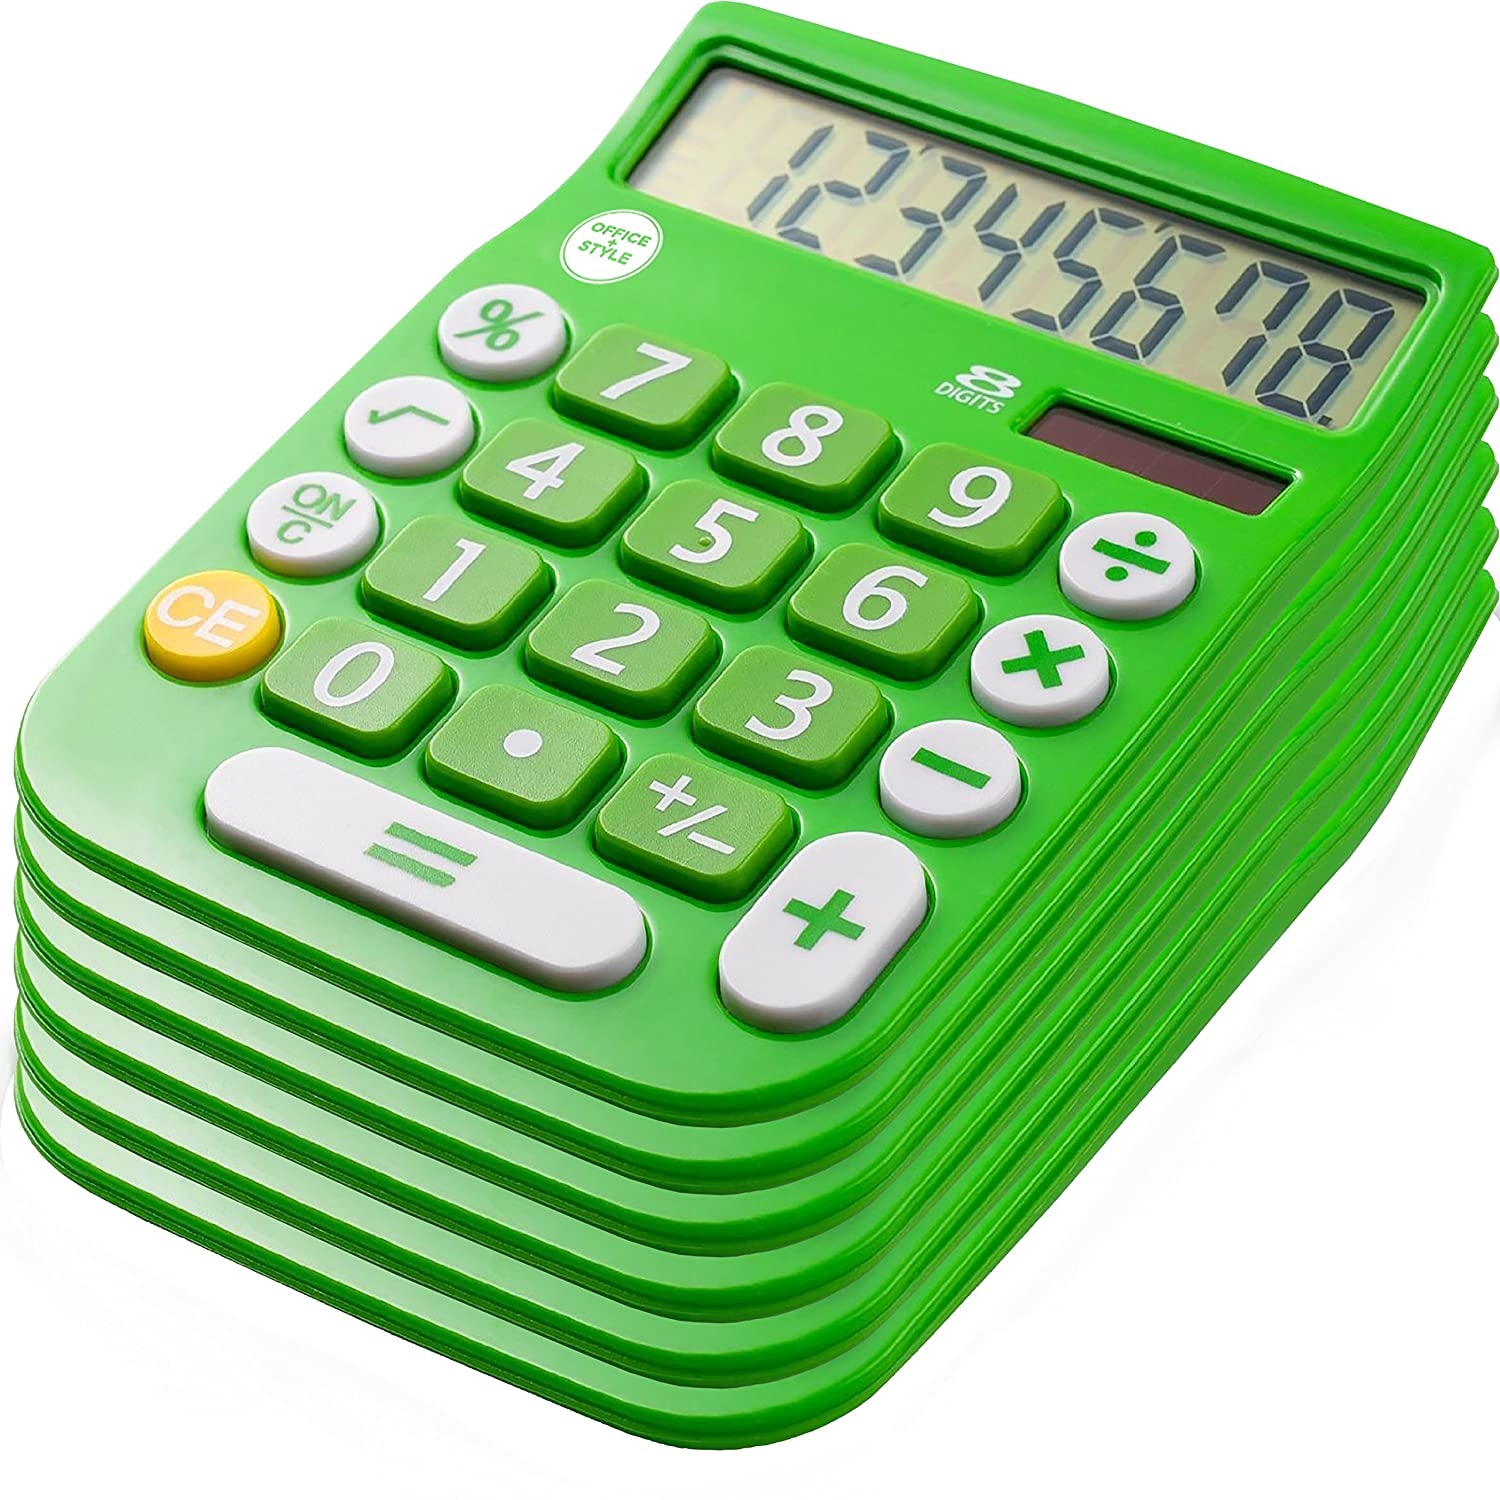 8 Digit Dual Powered Desktop Calculator, LCD Display, Blue- by Office + Style OSBLUECALCSINGLE